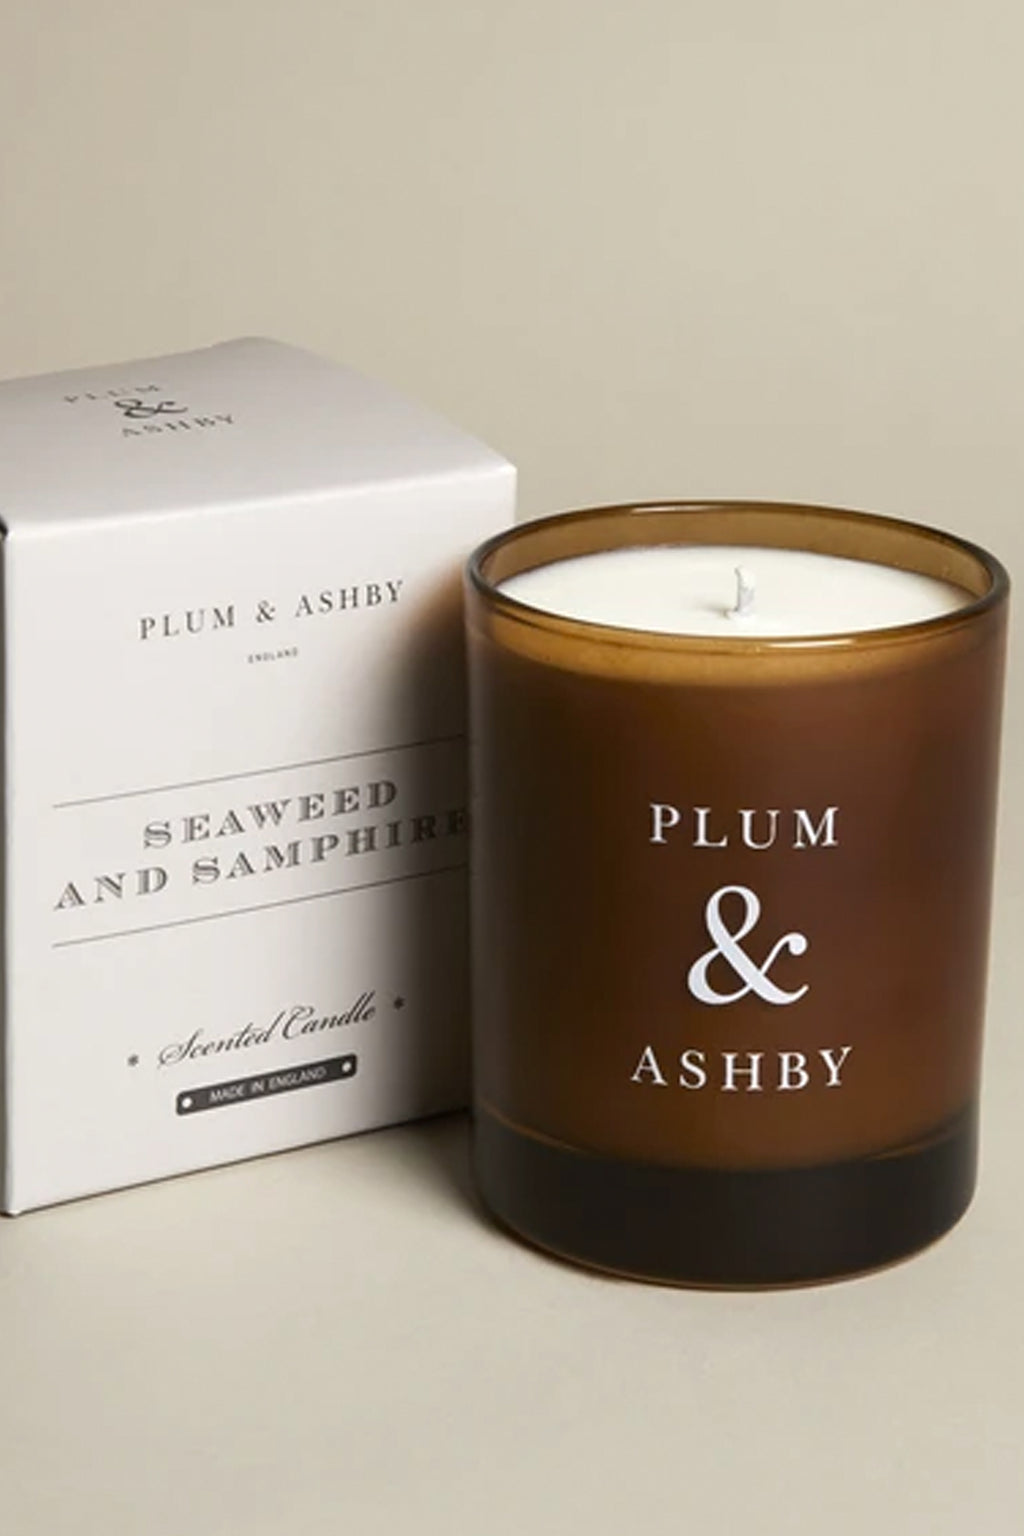 Plum & Ashby Seaweed & Samphire Candle - The Mercantile London